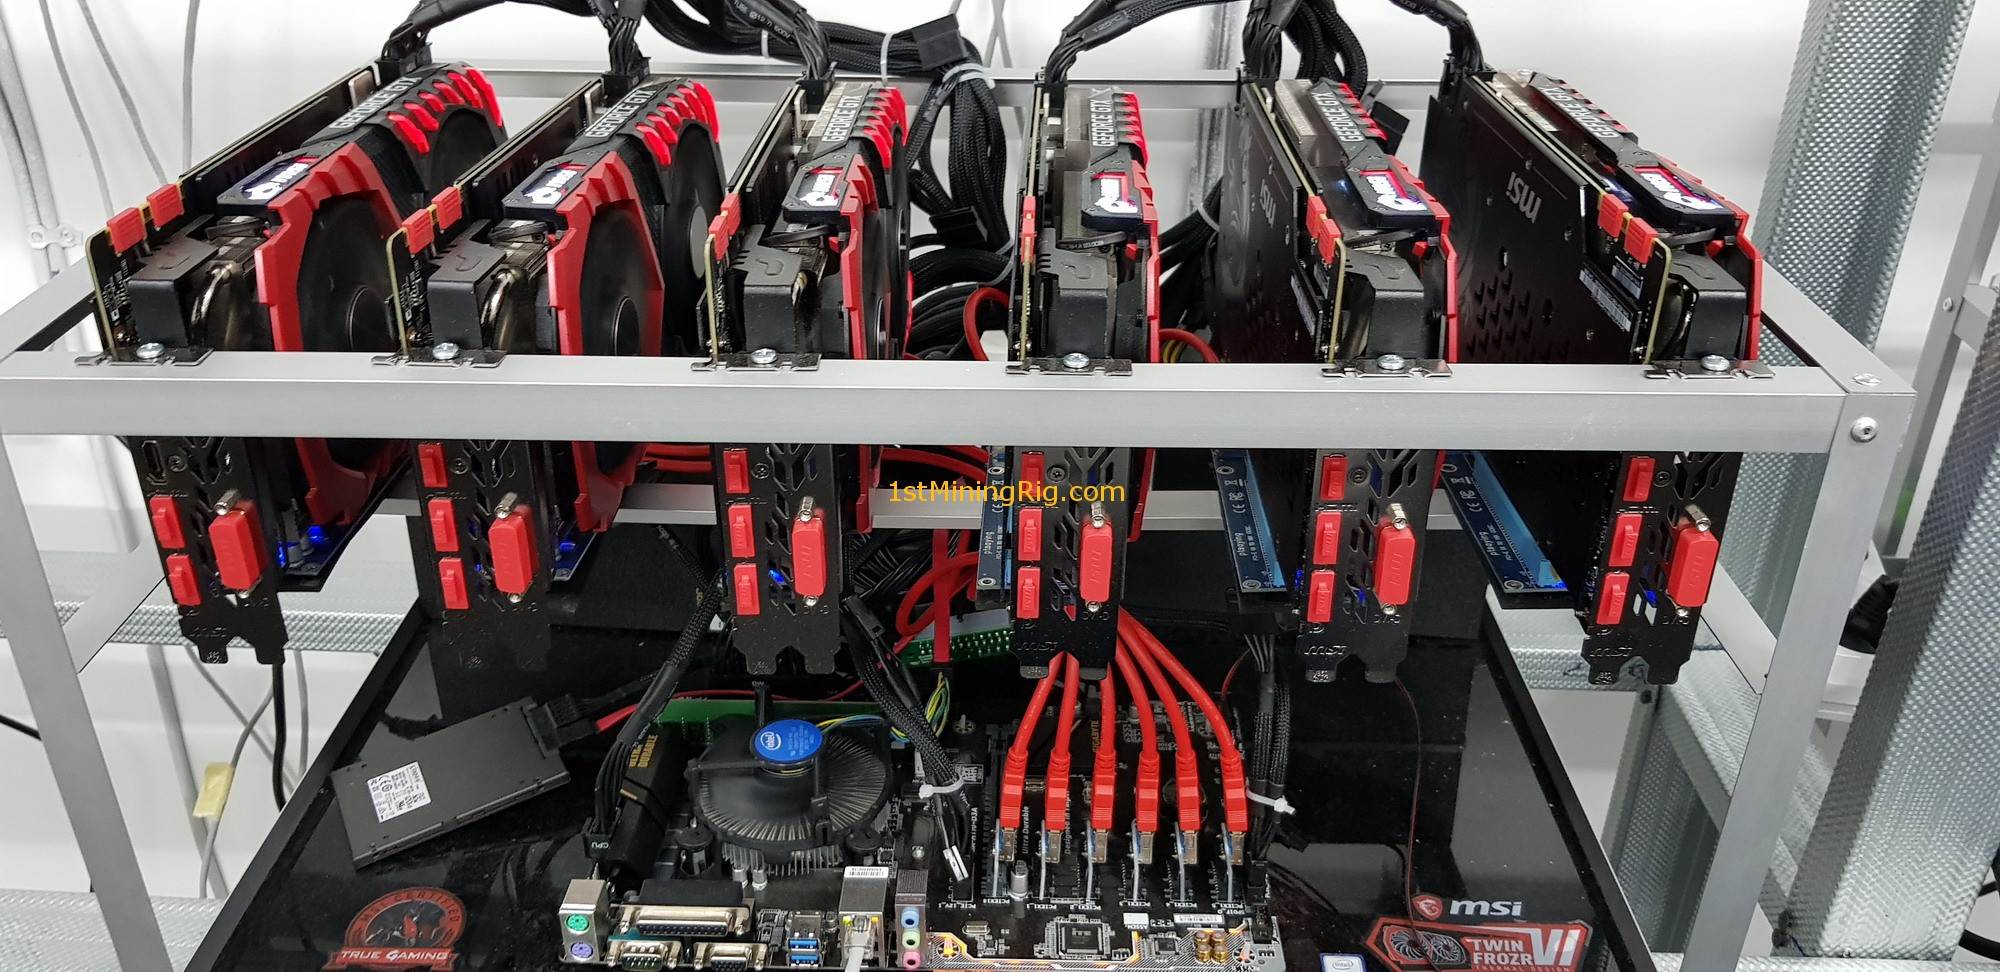 13 Vega 56 Mining Rig Most Profitable Coin To Mine With Gtx 1080 What to mine on geforce gtx 1080. 13 vega 56 mining rig most profitable